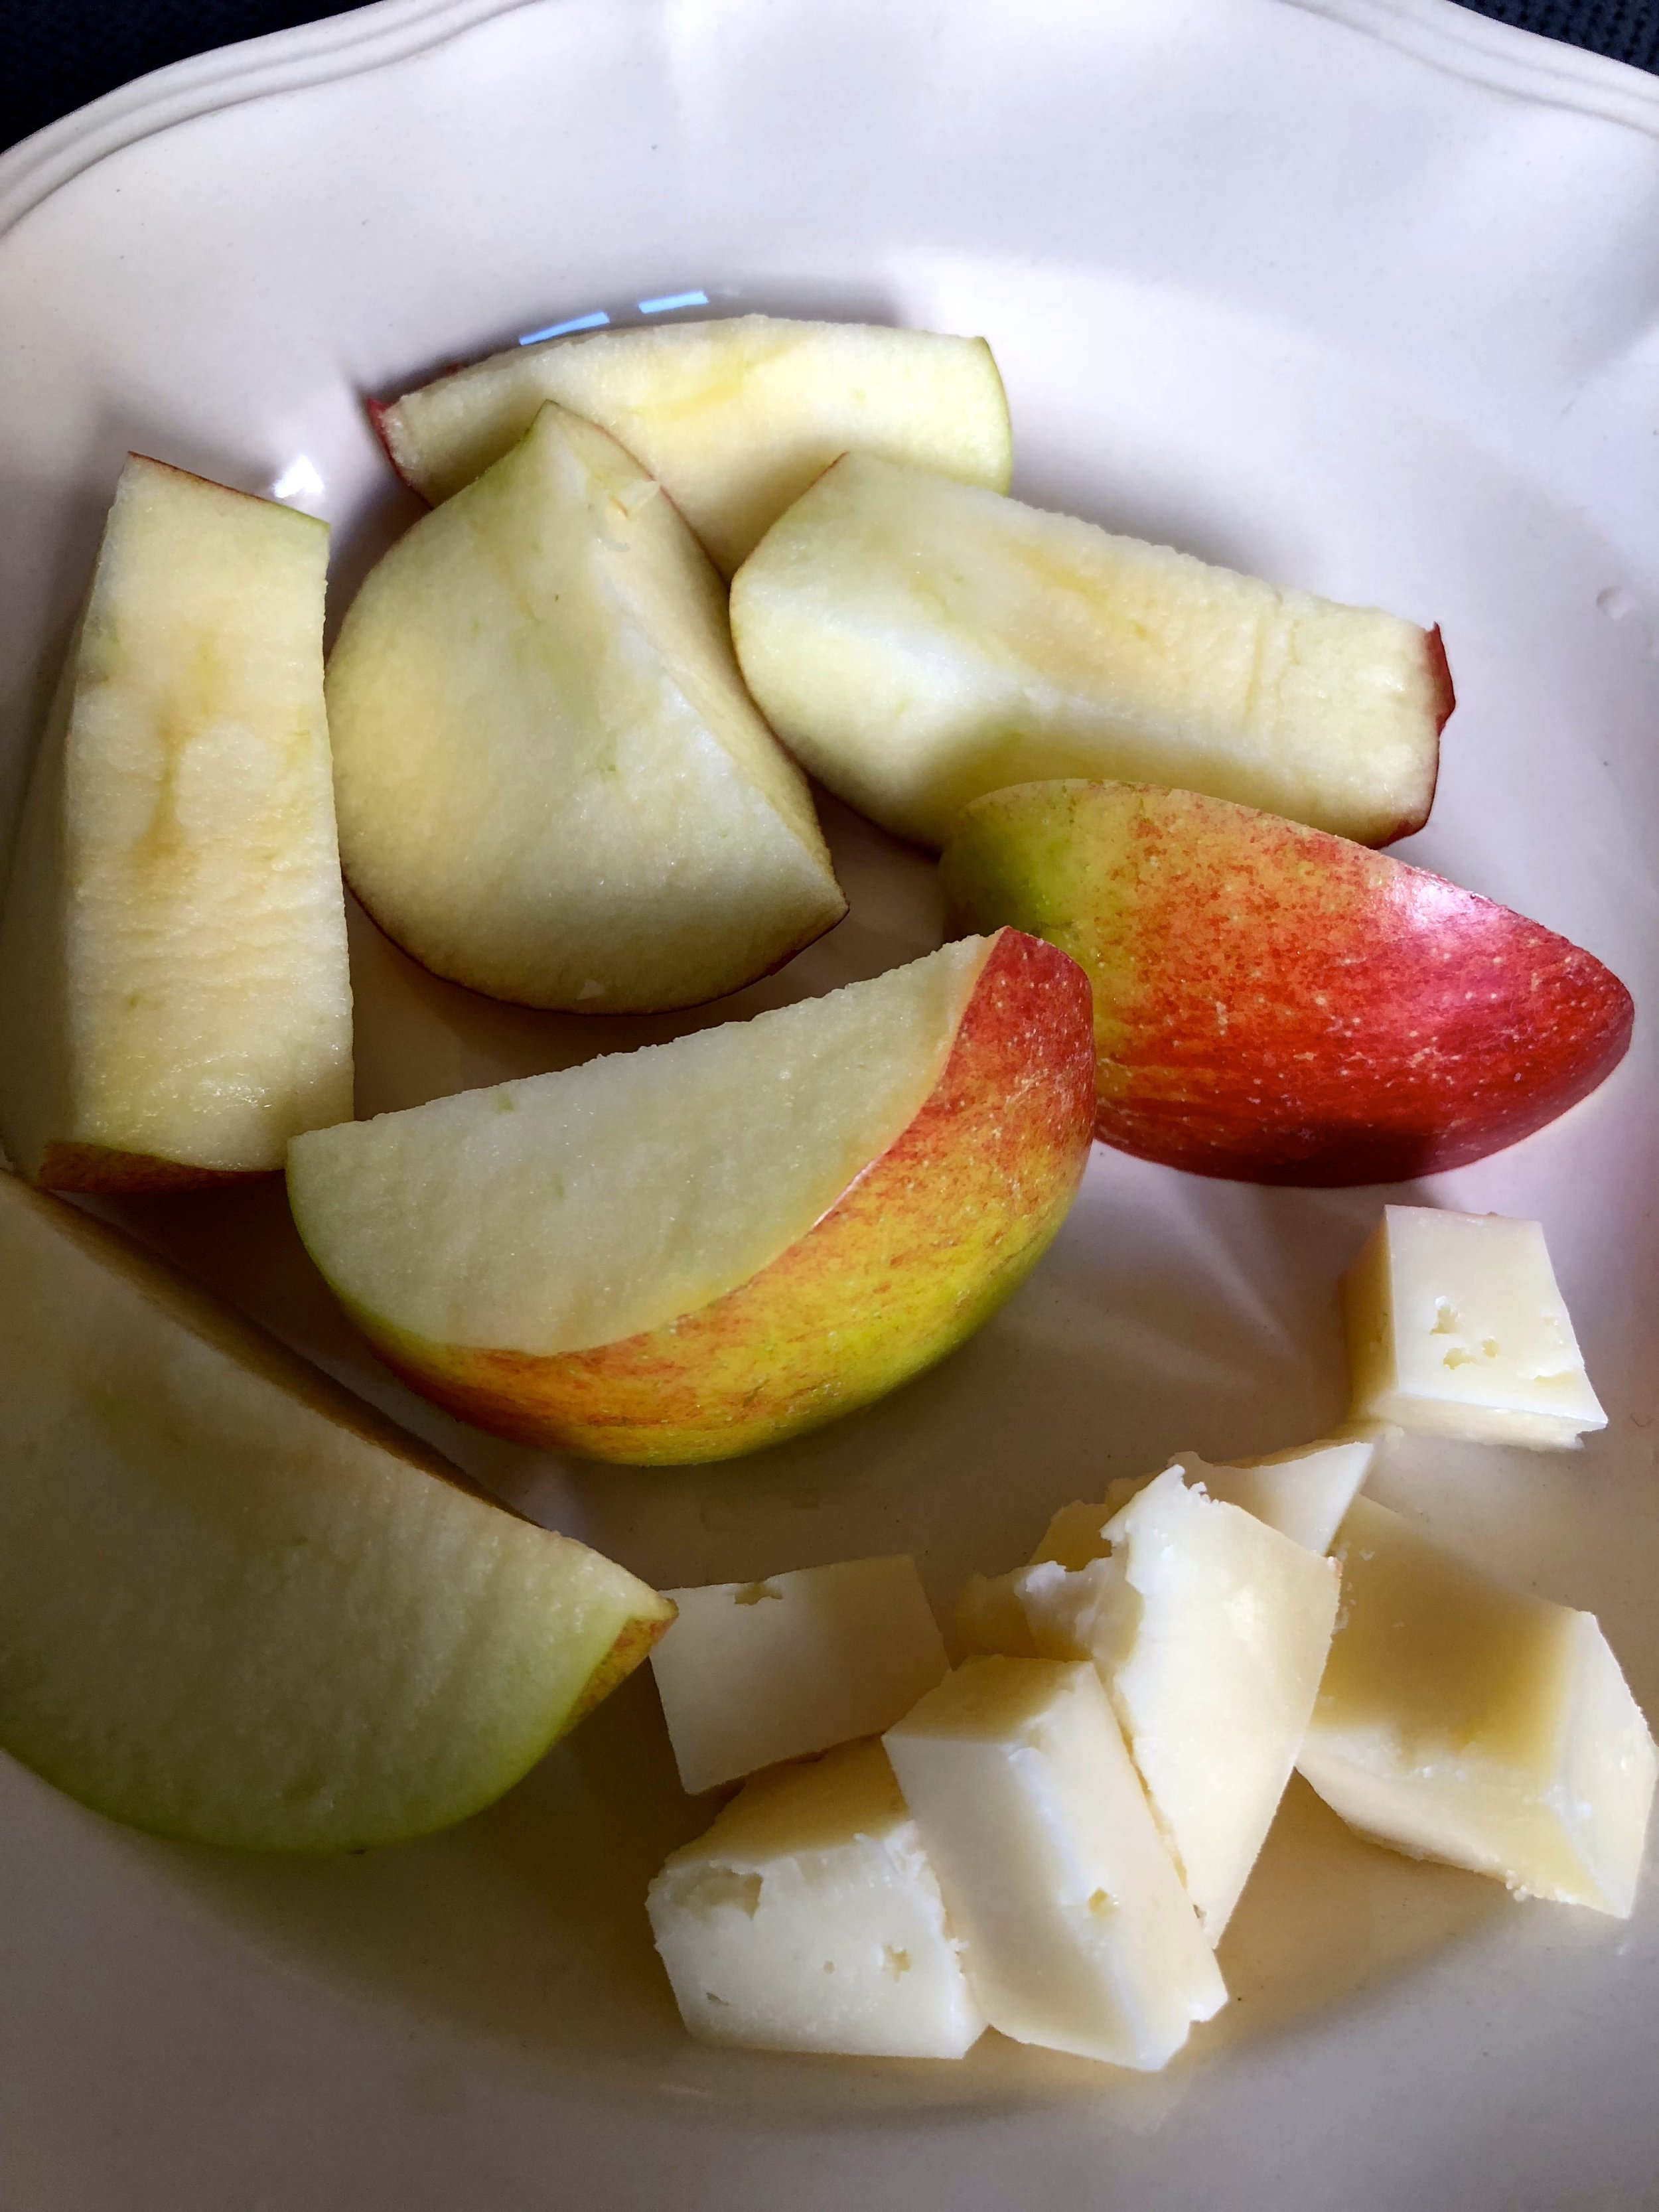 snack at home…sheep cheese and local apple